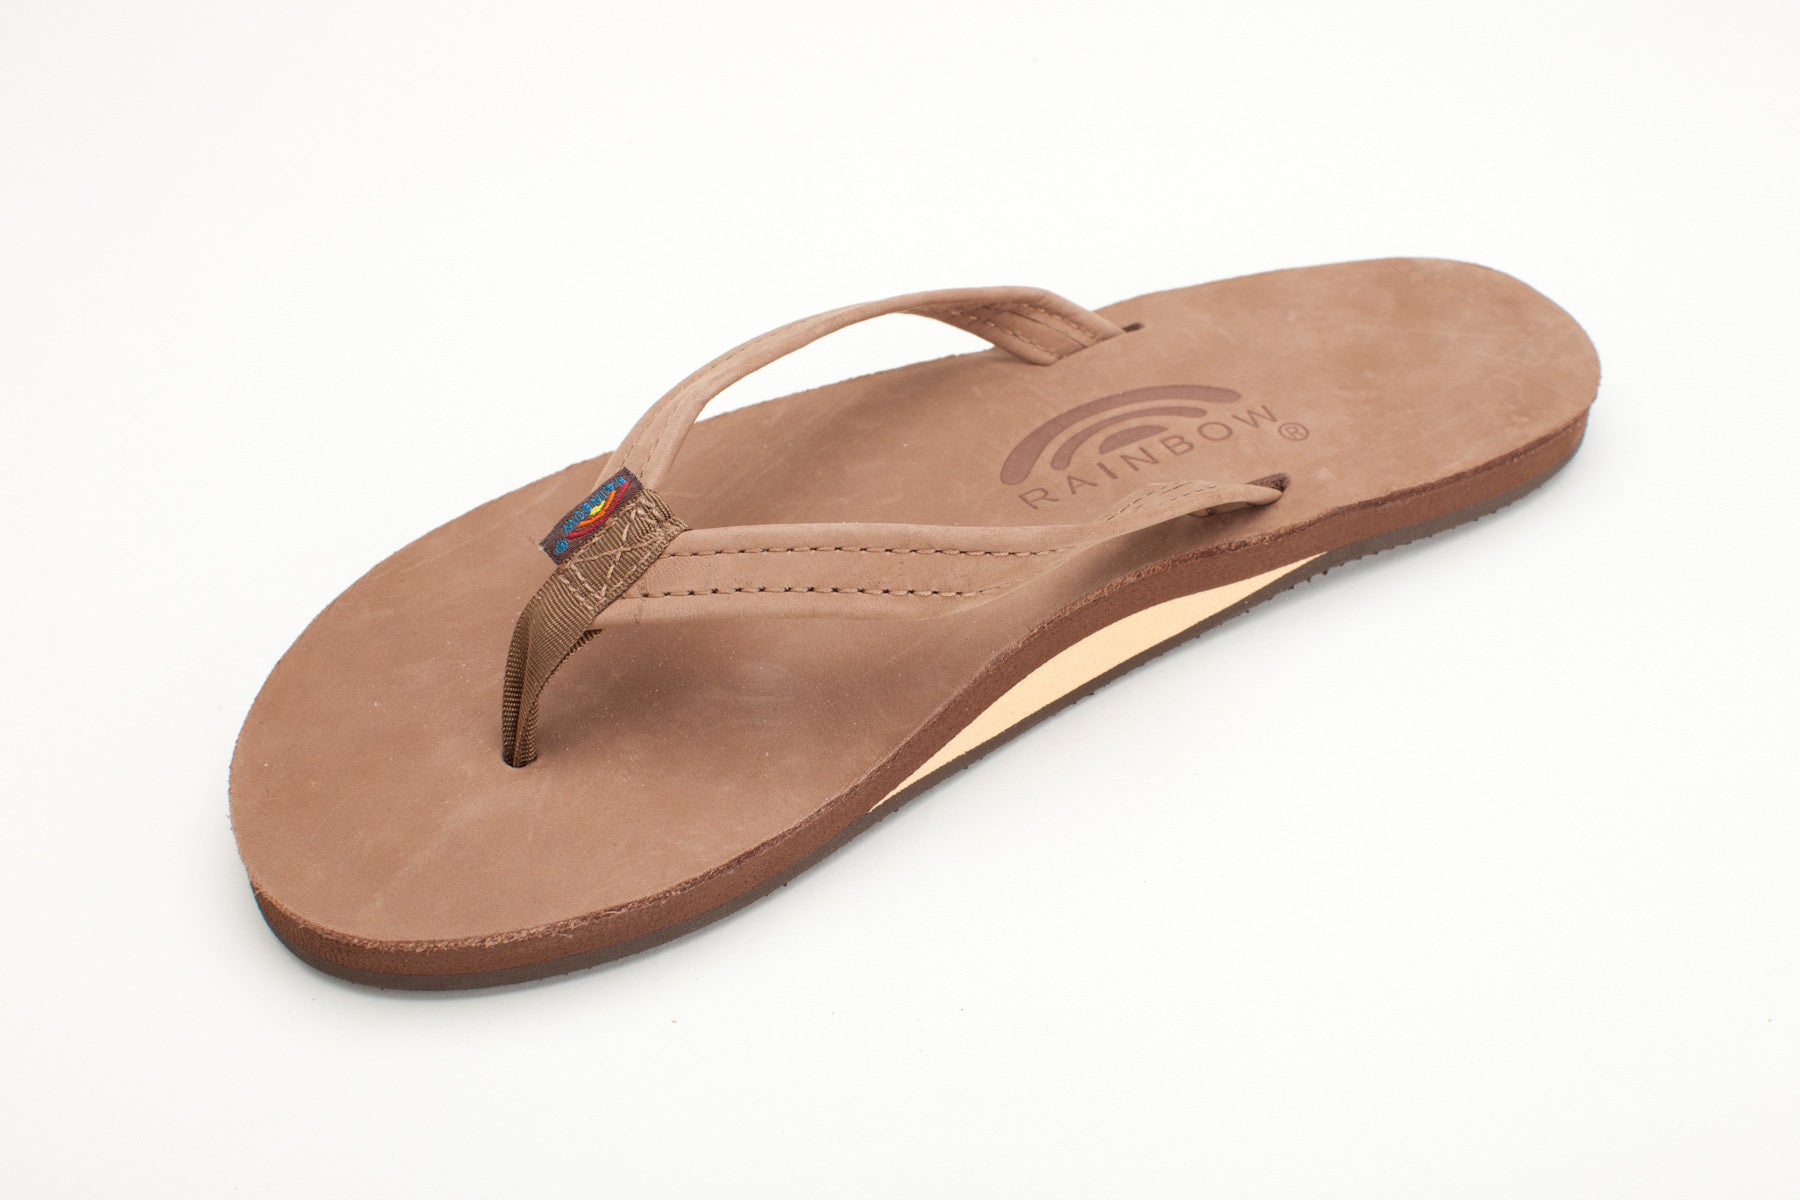 Rainbow Sandals Women's Dark Brown Premier Leather Single Layer with Arch Support and a Narrow Strap